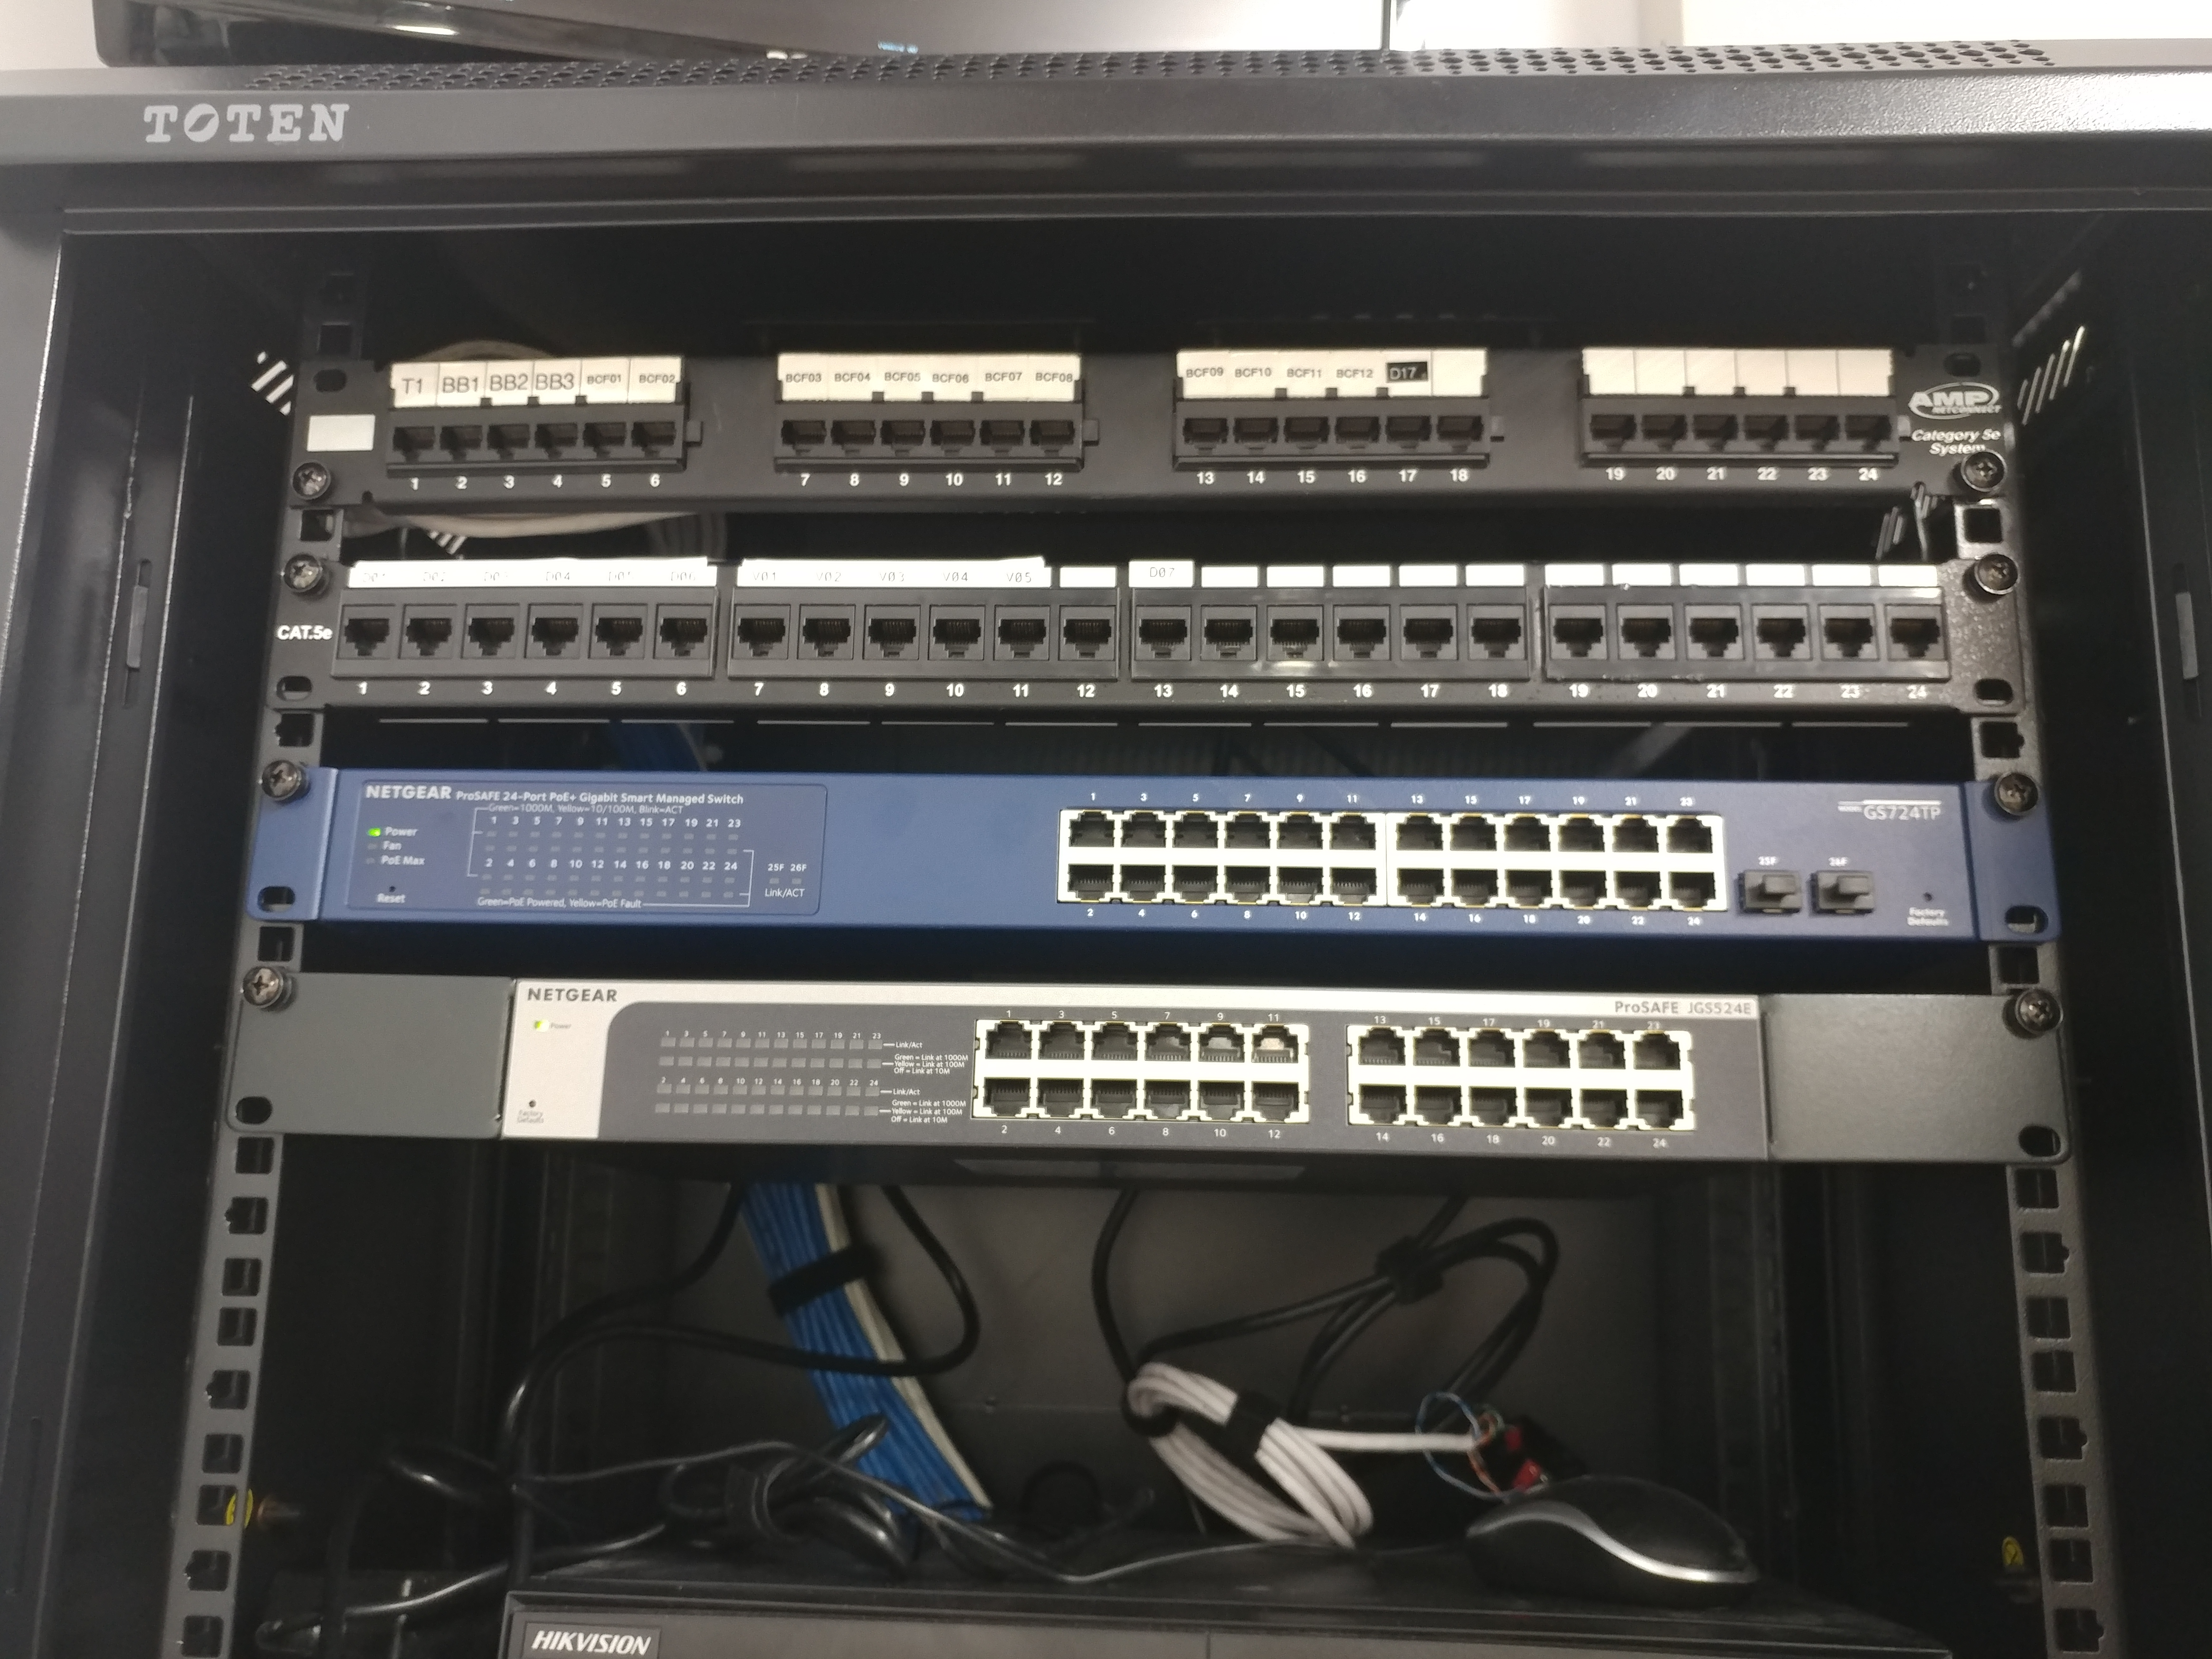 new patch panels and Ethernet switches in the new rack